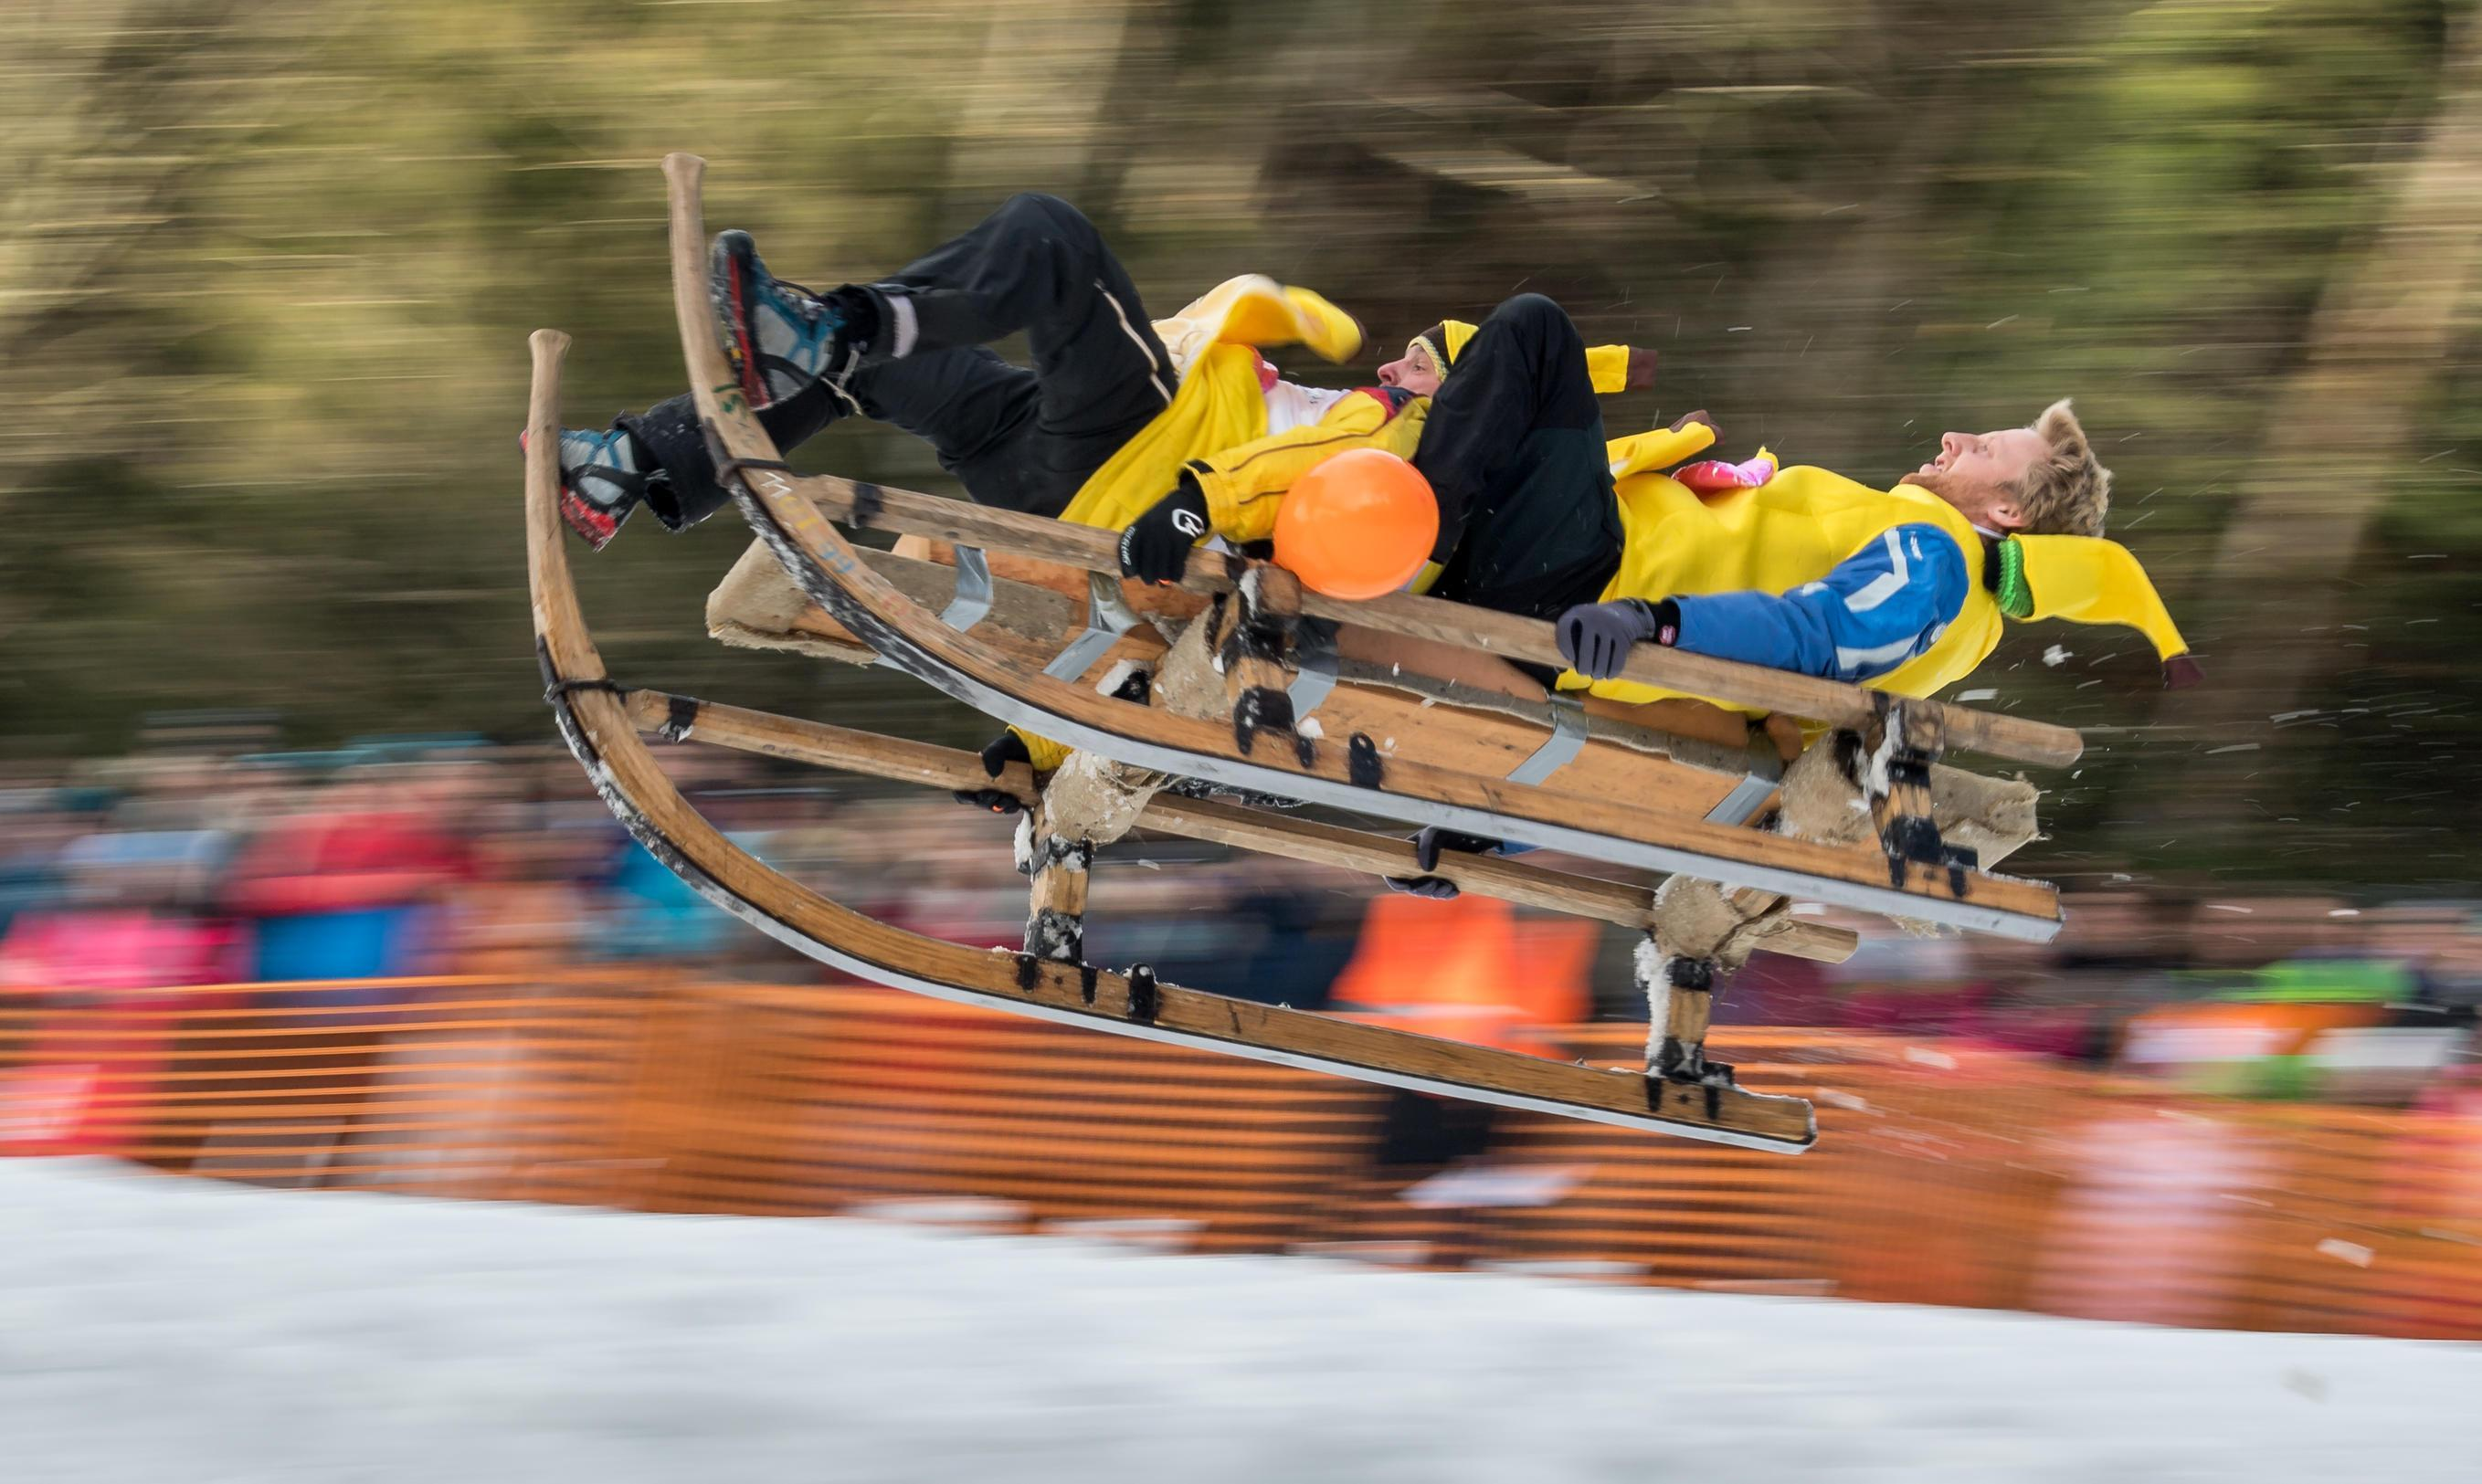 German sledge race with NO BRAKES sees daredevils fly down one-mile track with a jump